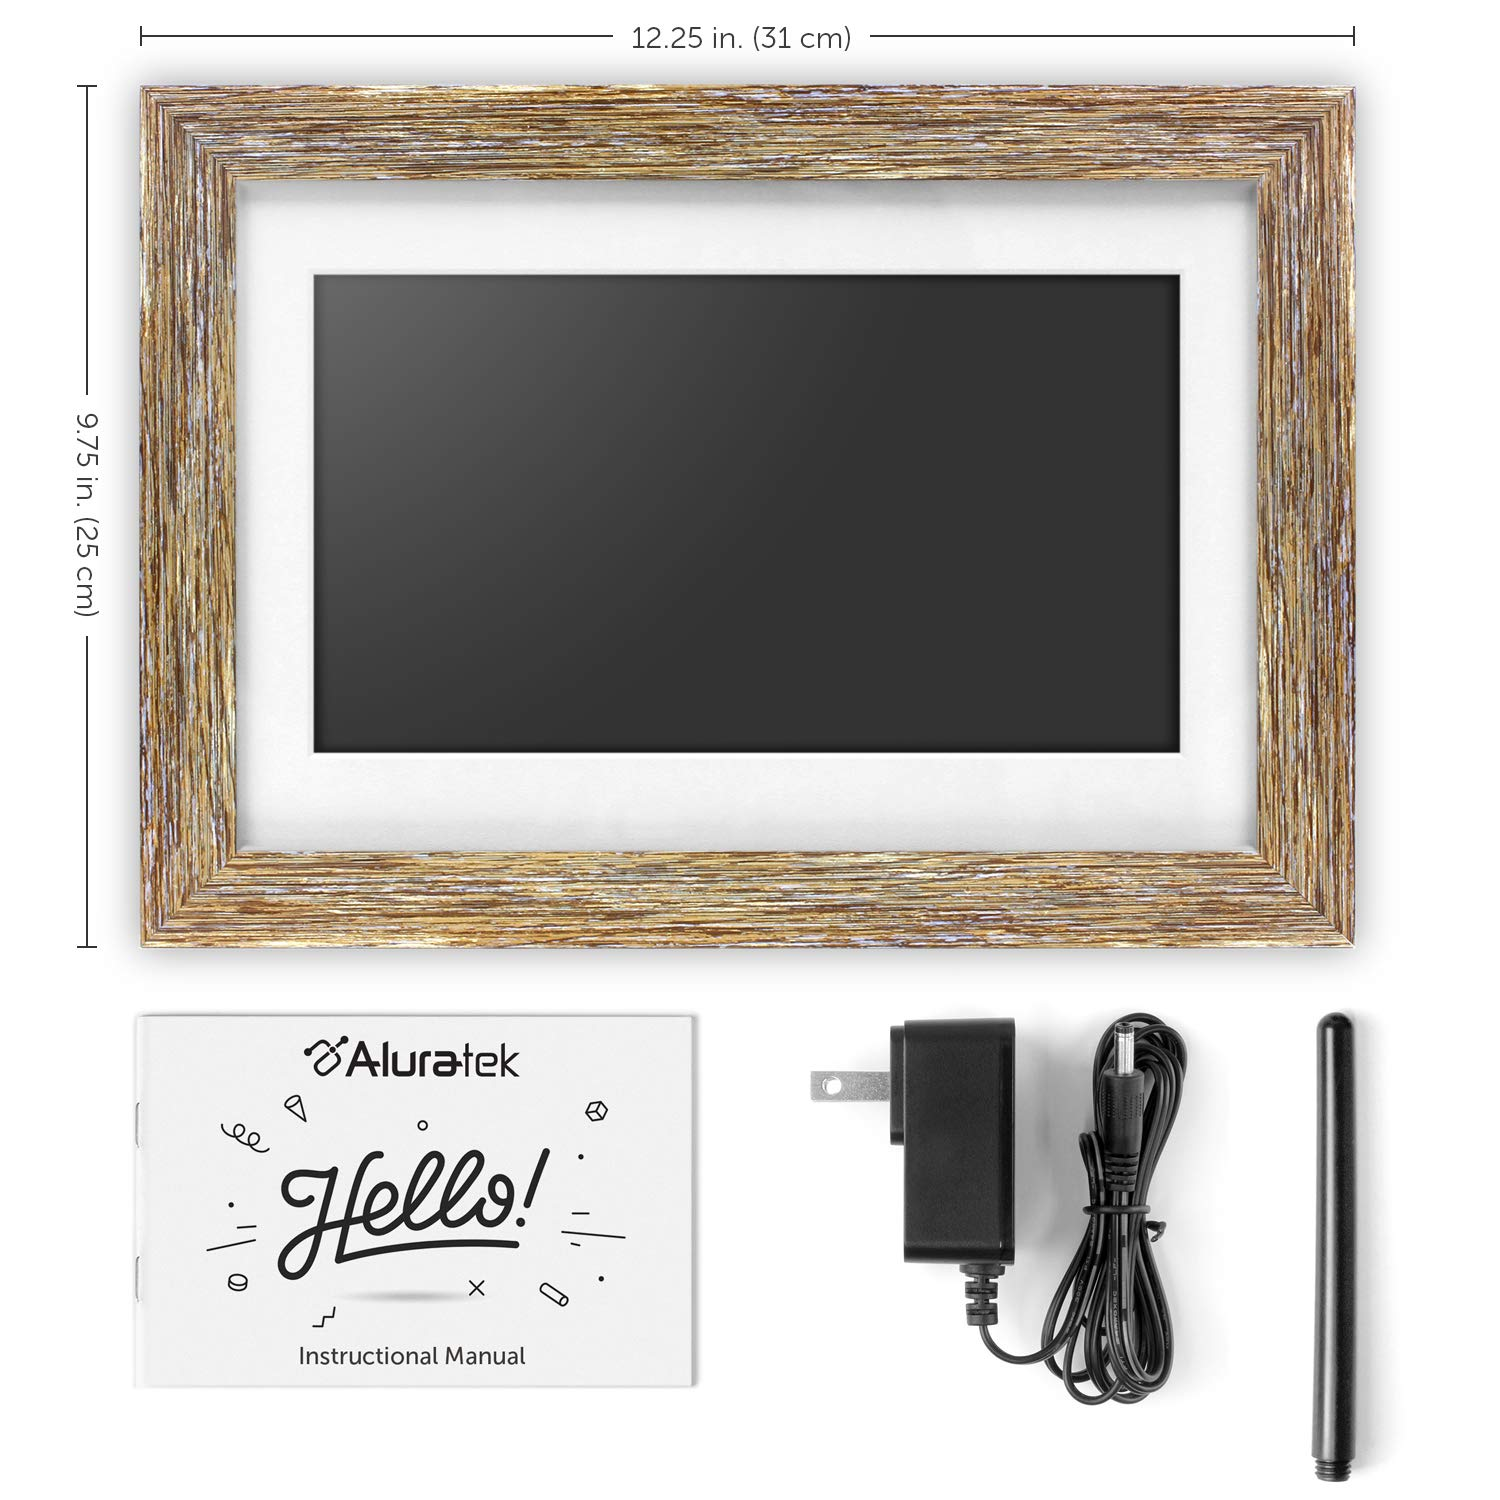 Aluratek (ADPFD10F) 10 inch Digital Photo Frame with Auto Slideshow, Distressed Wood Border, 1024 x 600, 16: 9 Aspect Ratio, Wall Mountable by Aluratek (Image #7)